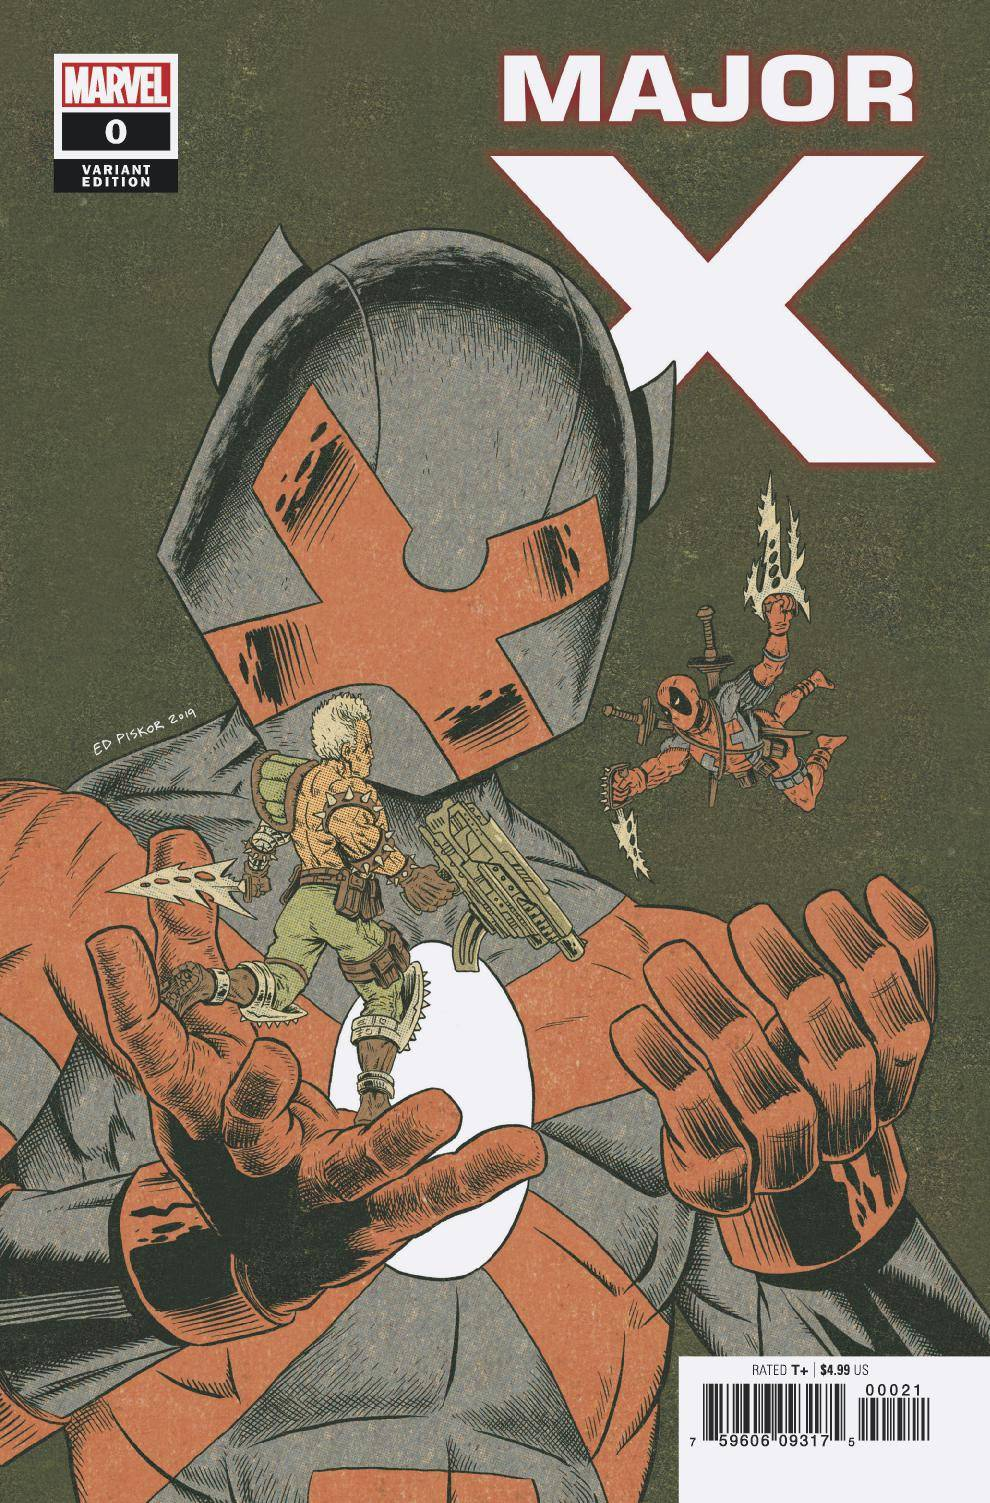 MAJOR X #0 PISKOR VARIANT 08/07/19 FOC 07/15/19